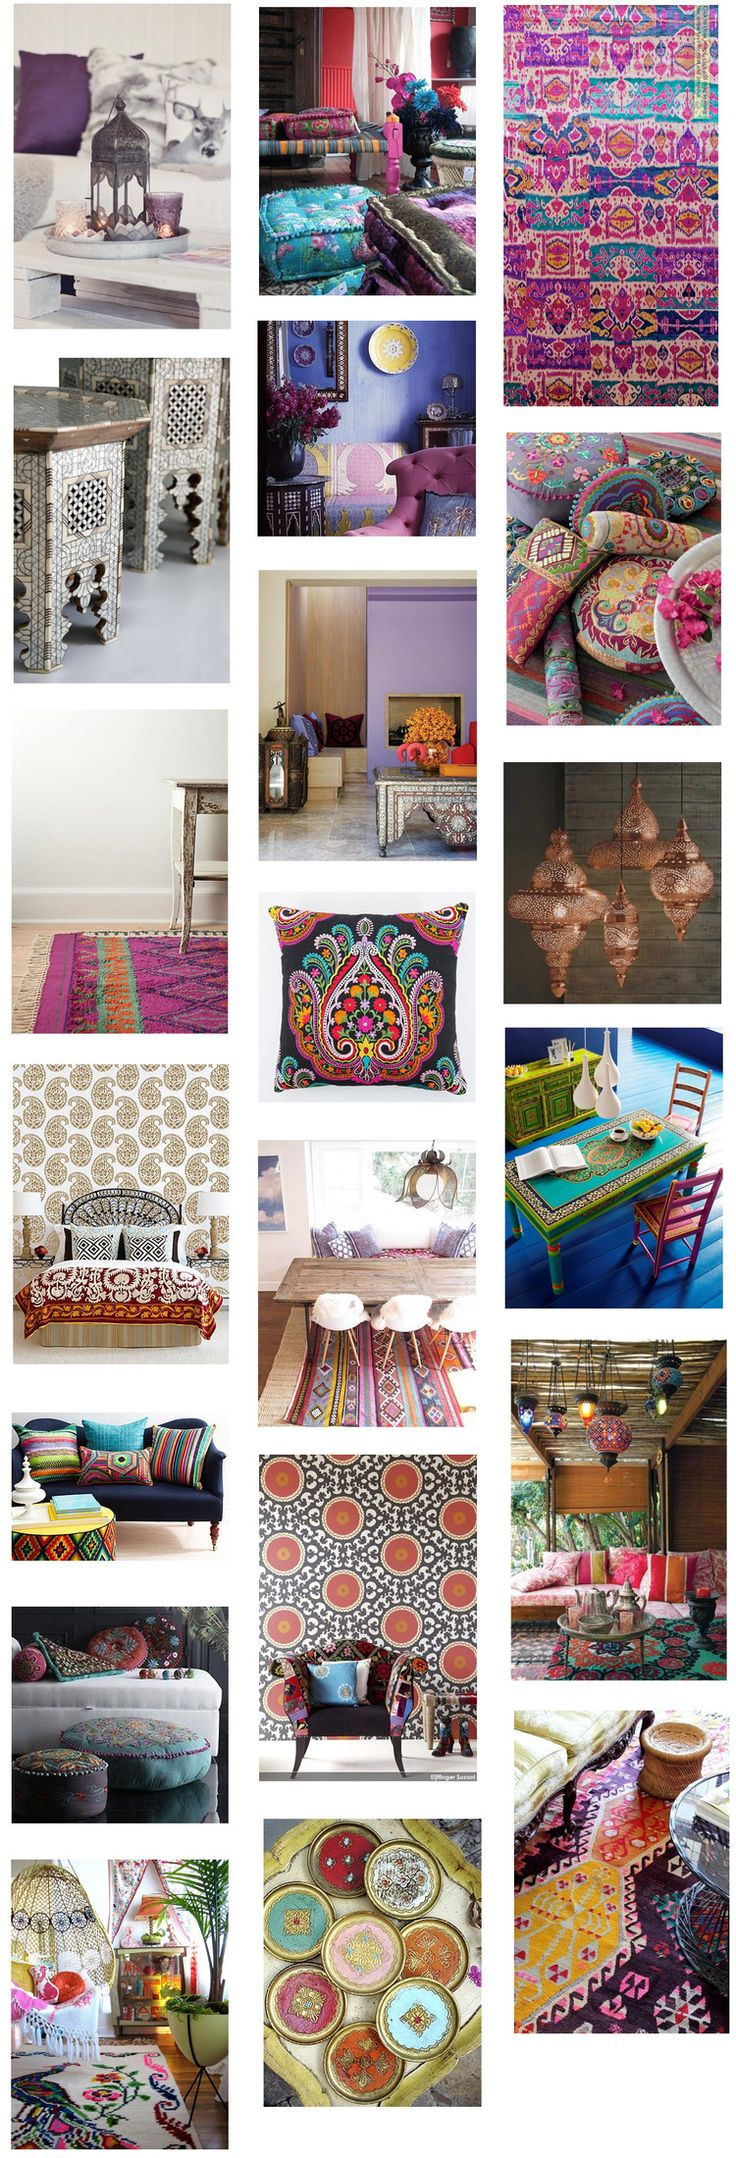 Let's inspire! Moroccan Decor So Lovely / Moroccan Rugs / Kilim Rugs & Cushions / Oriental Embroidery / Moroccan Tray Tables & Tea Trays / Statement Wallpaper / Oriental Lamps & Lanterns /